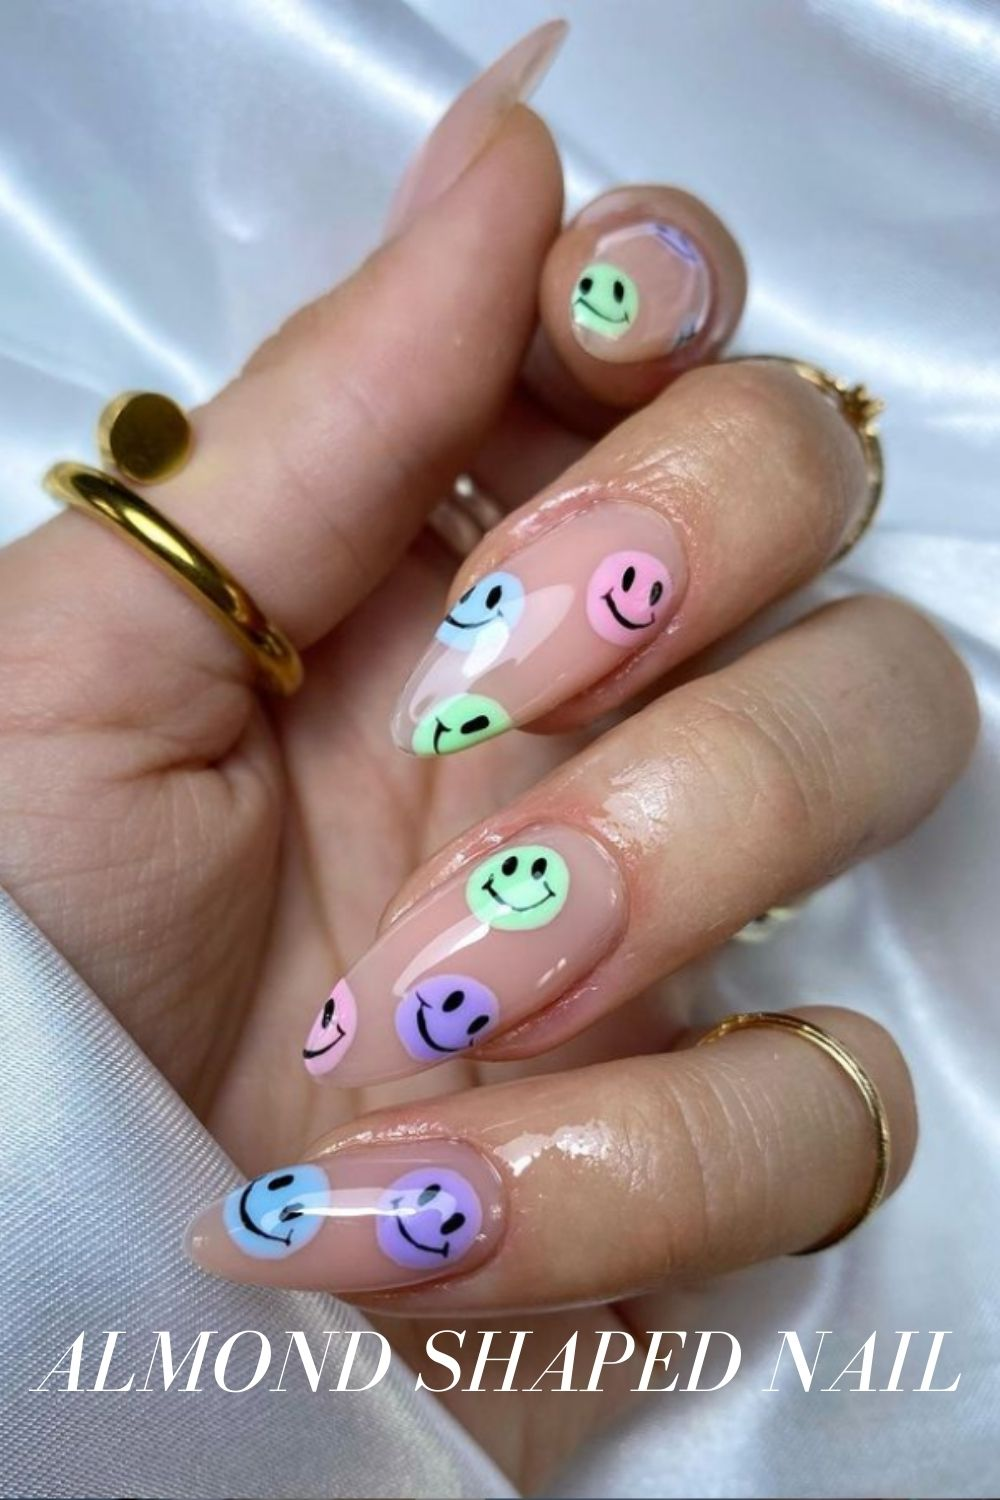 Almond nail design with smiley face